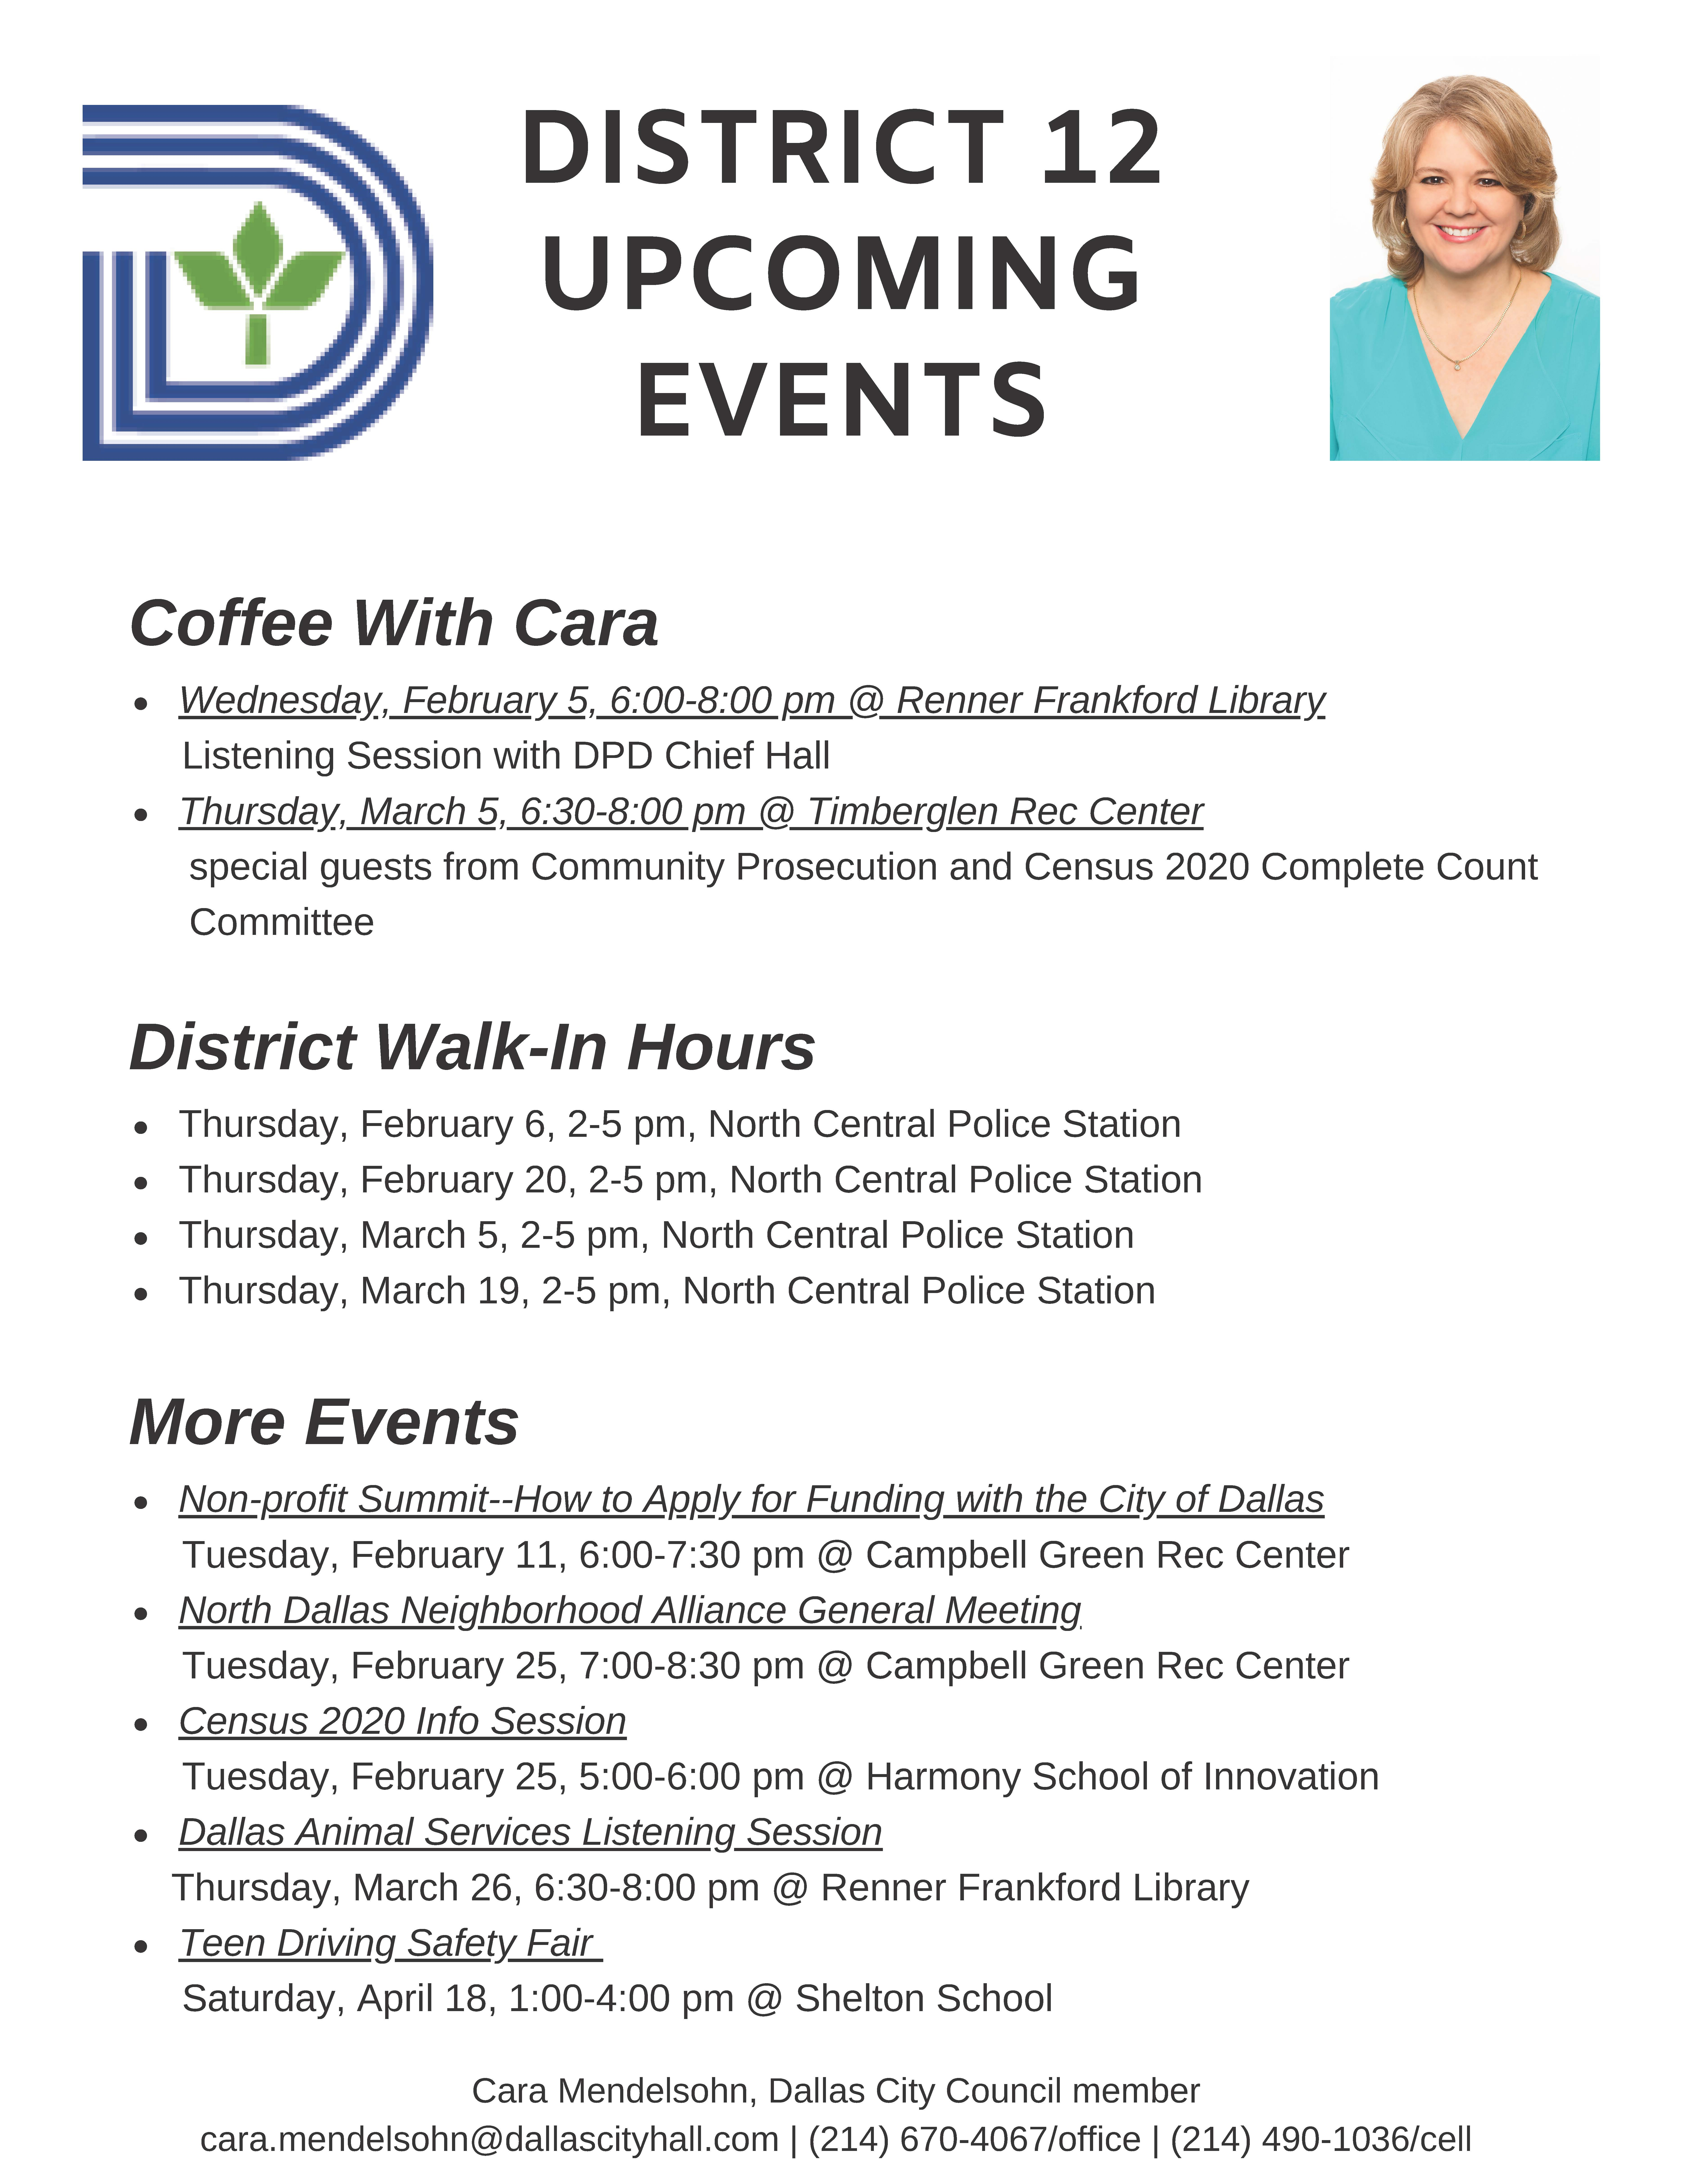 District 12 Upcoming Events.jpg